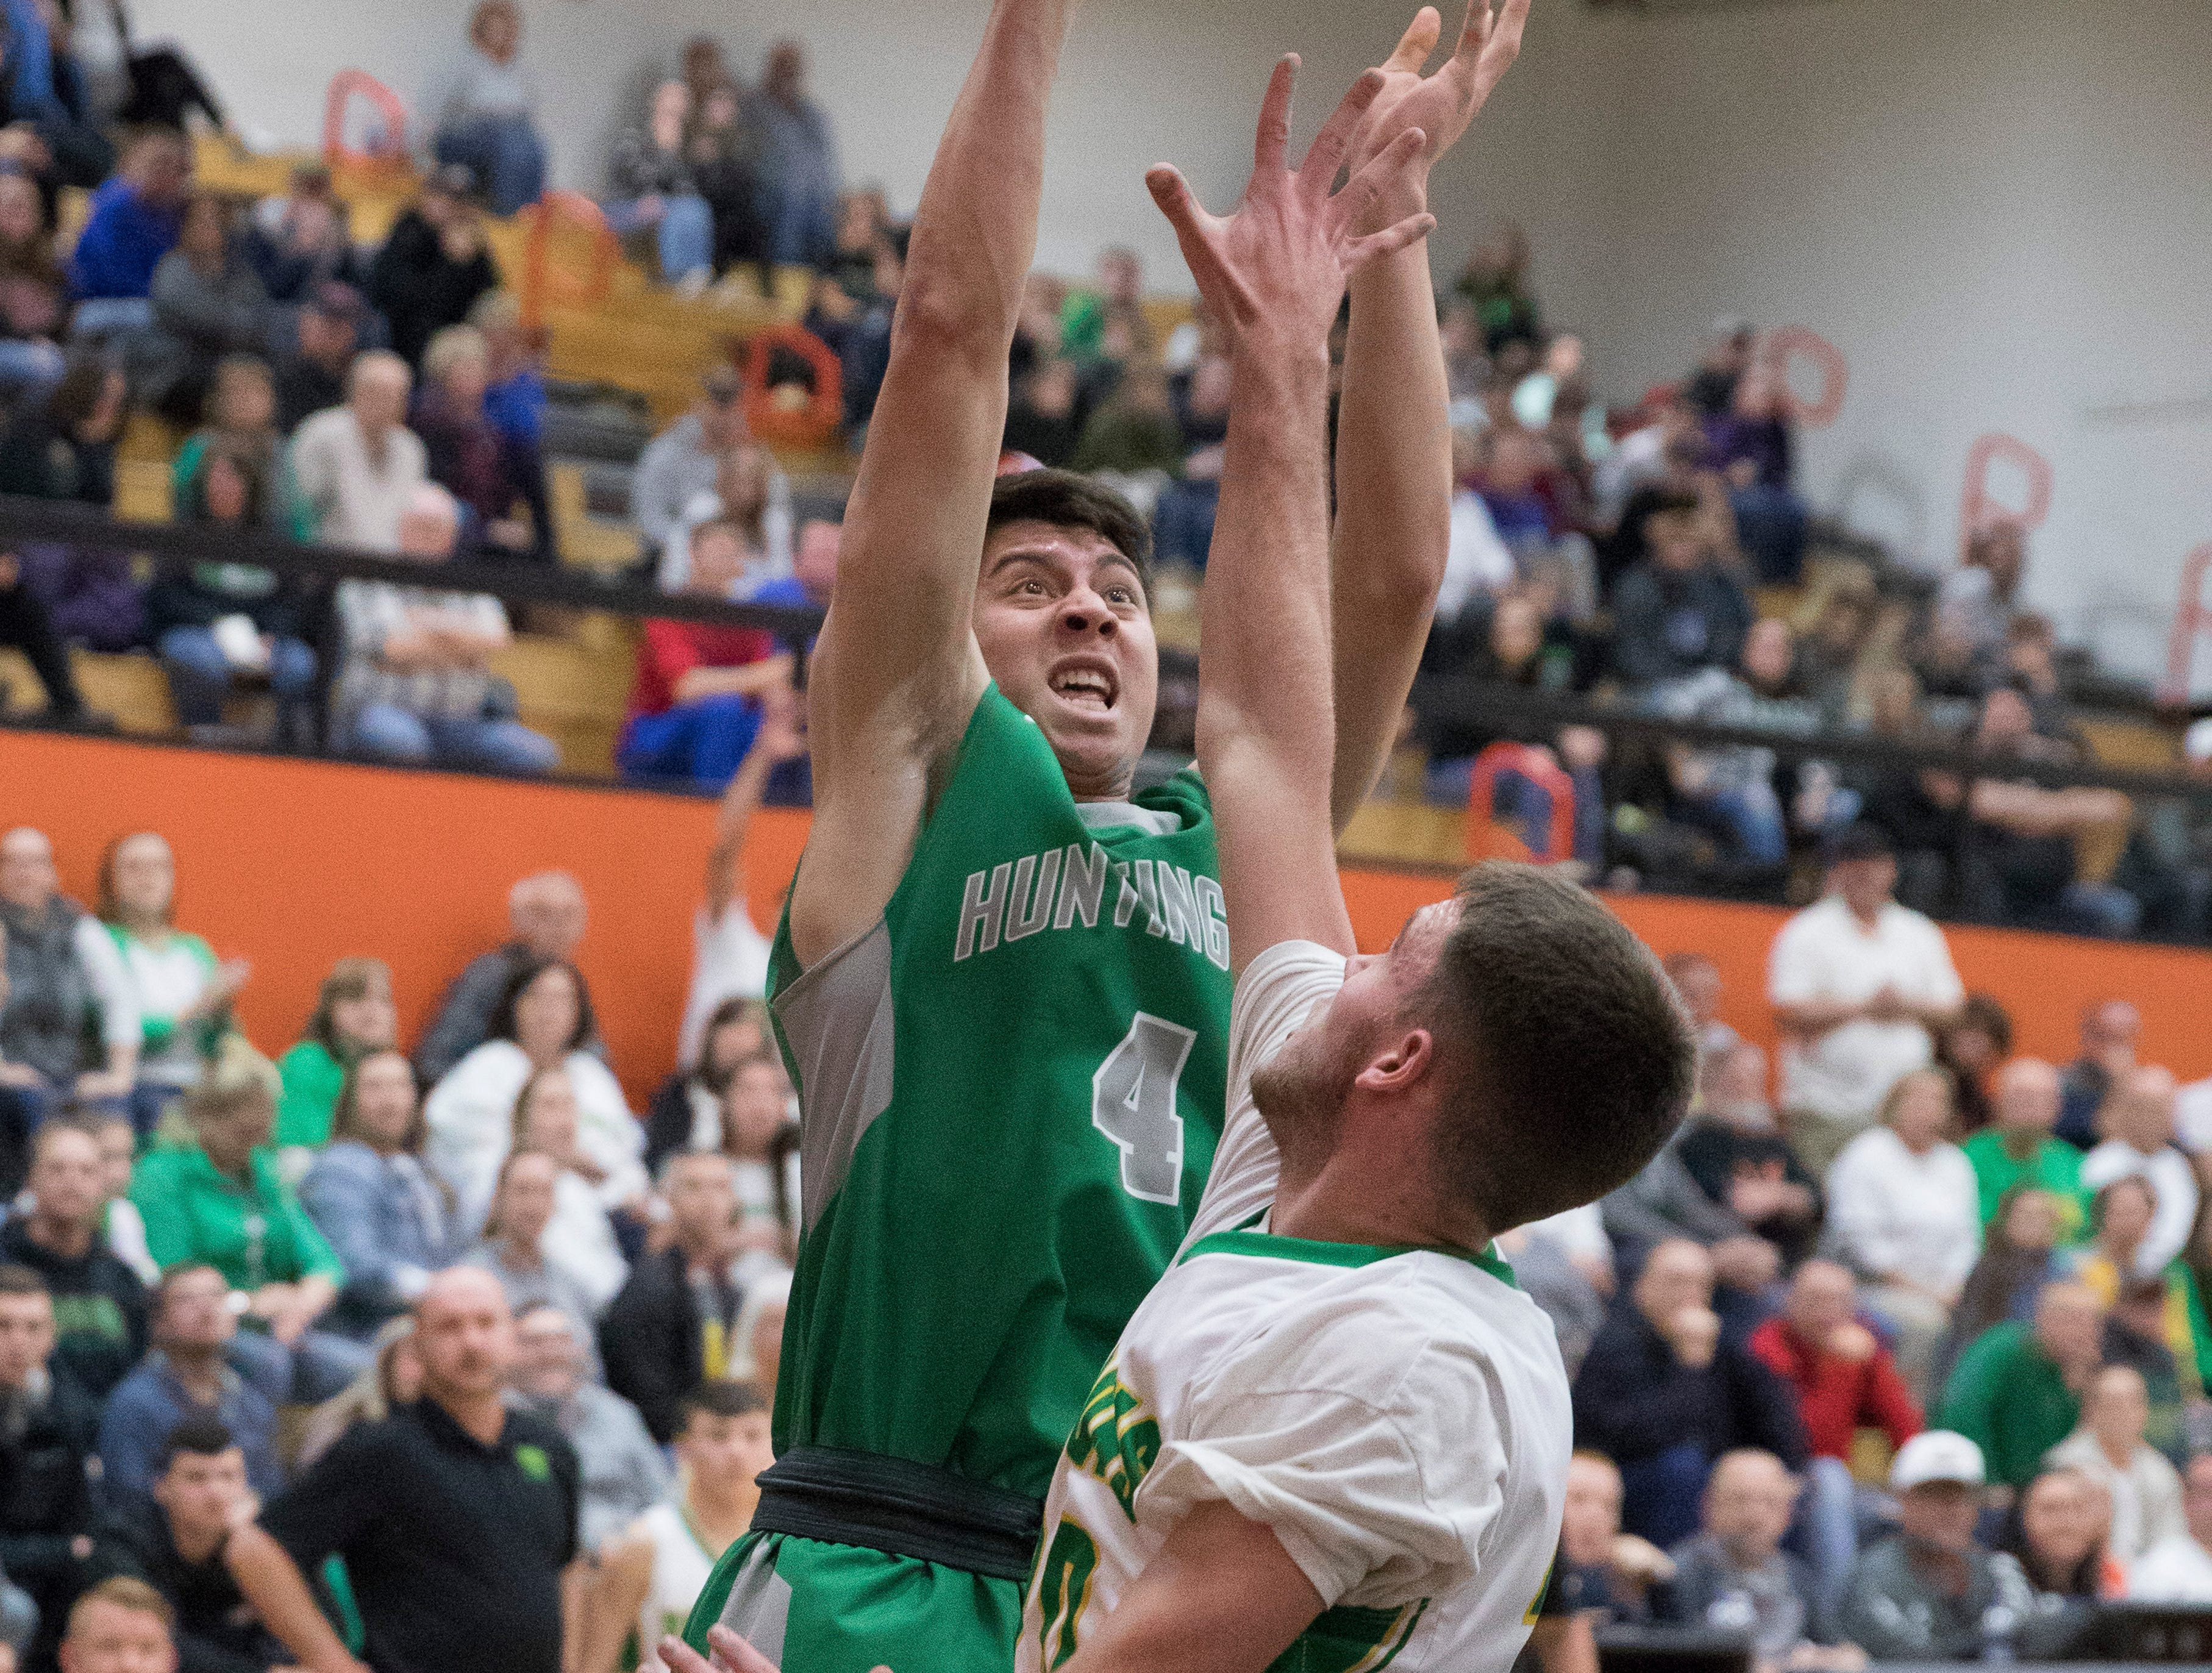 West Union defeated Huntington 42-39 Wednesday night in a Division III sectional semifinal game in Waverly, Ohio.